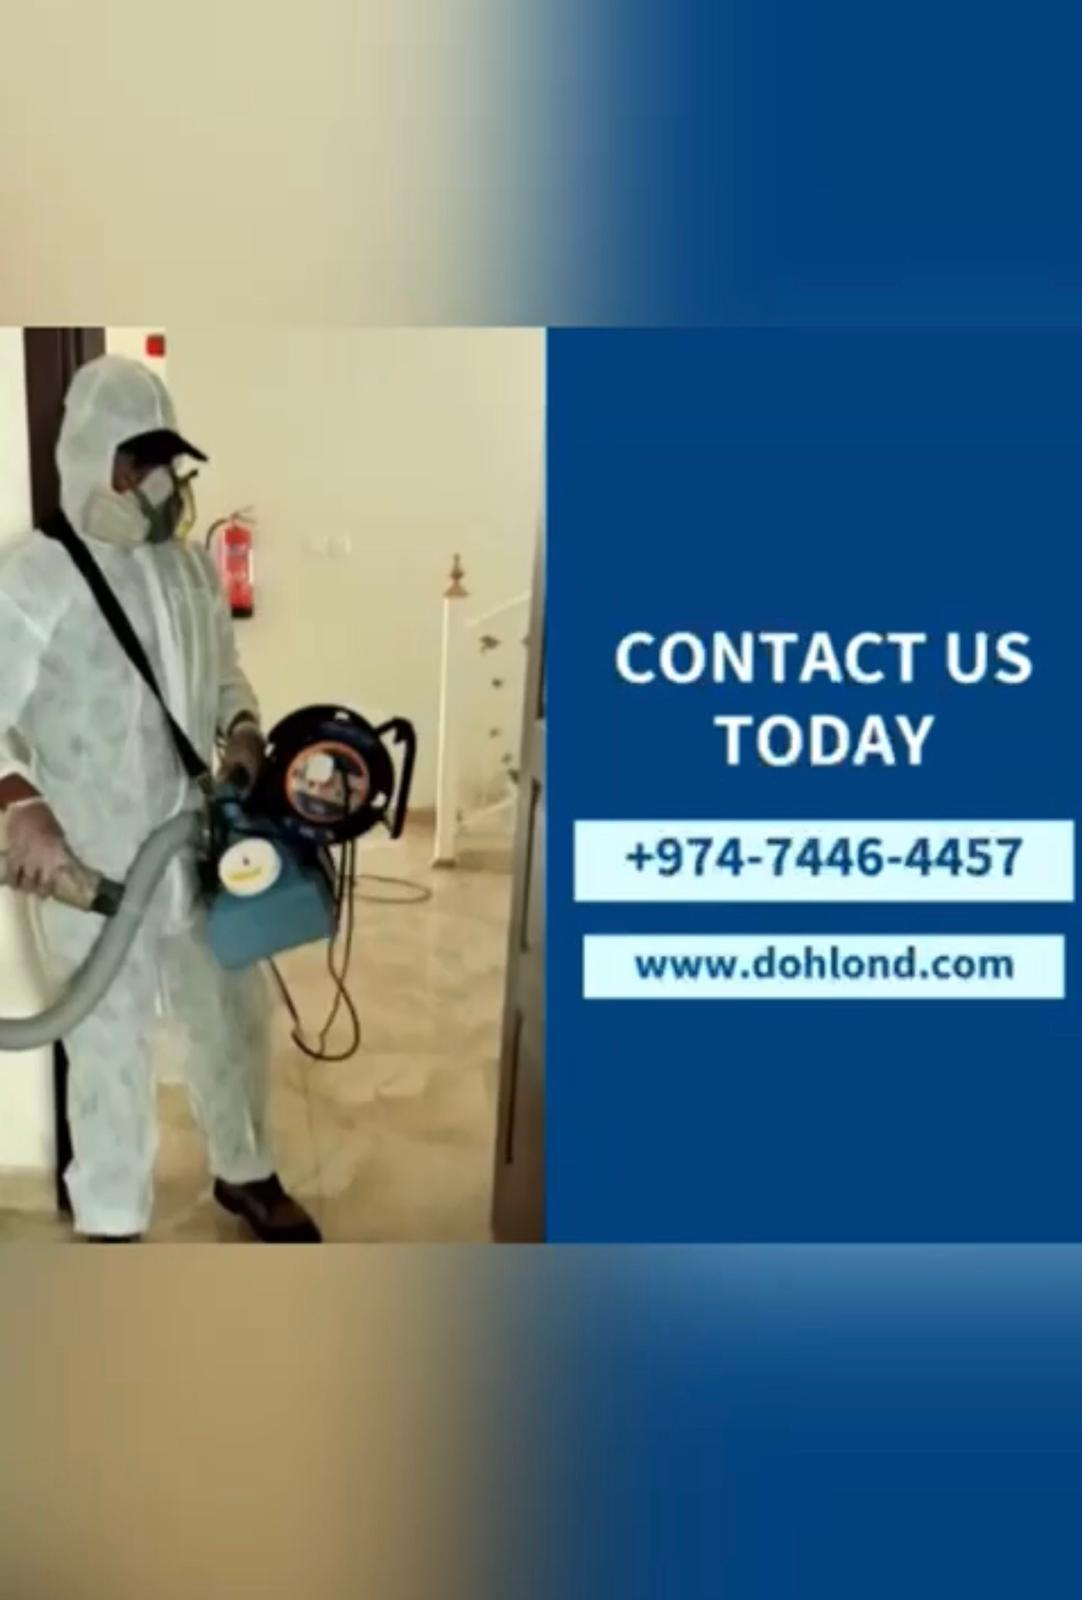 PEST CONTROL - DISINFECTION SERVICES - Pearl / Daf